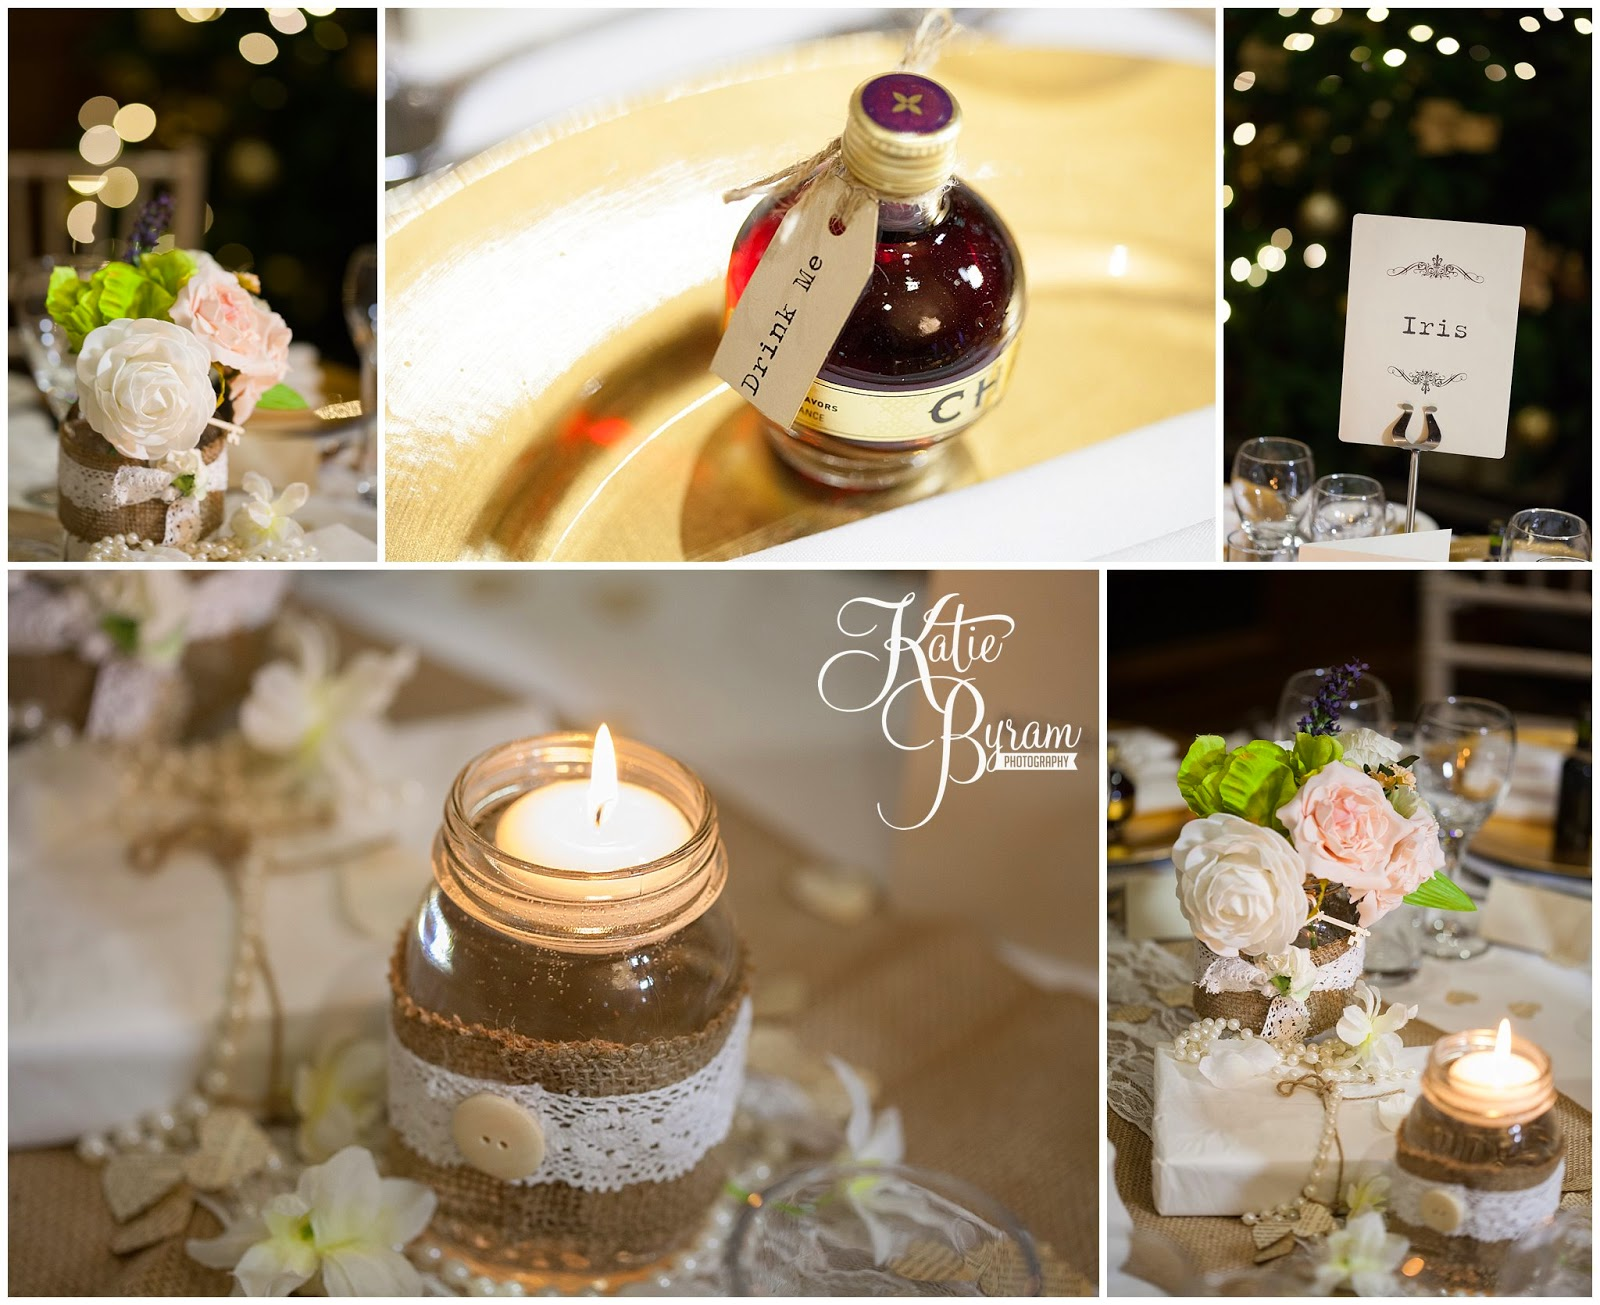 christmas wedding, winter wedding, balloon bedlam, drinks favours, newcastle city centre wedding, the vermont hotel,vermont weddings, newcastle wedding venue, katie byram photography, hotel wedding newcastle, quayside, nighttime wedding photographs